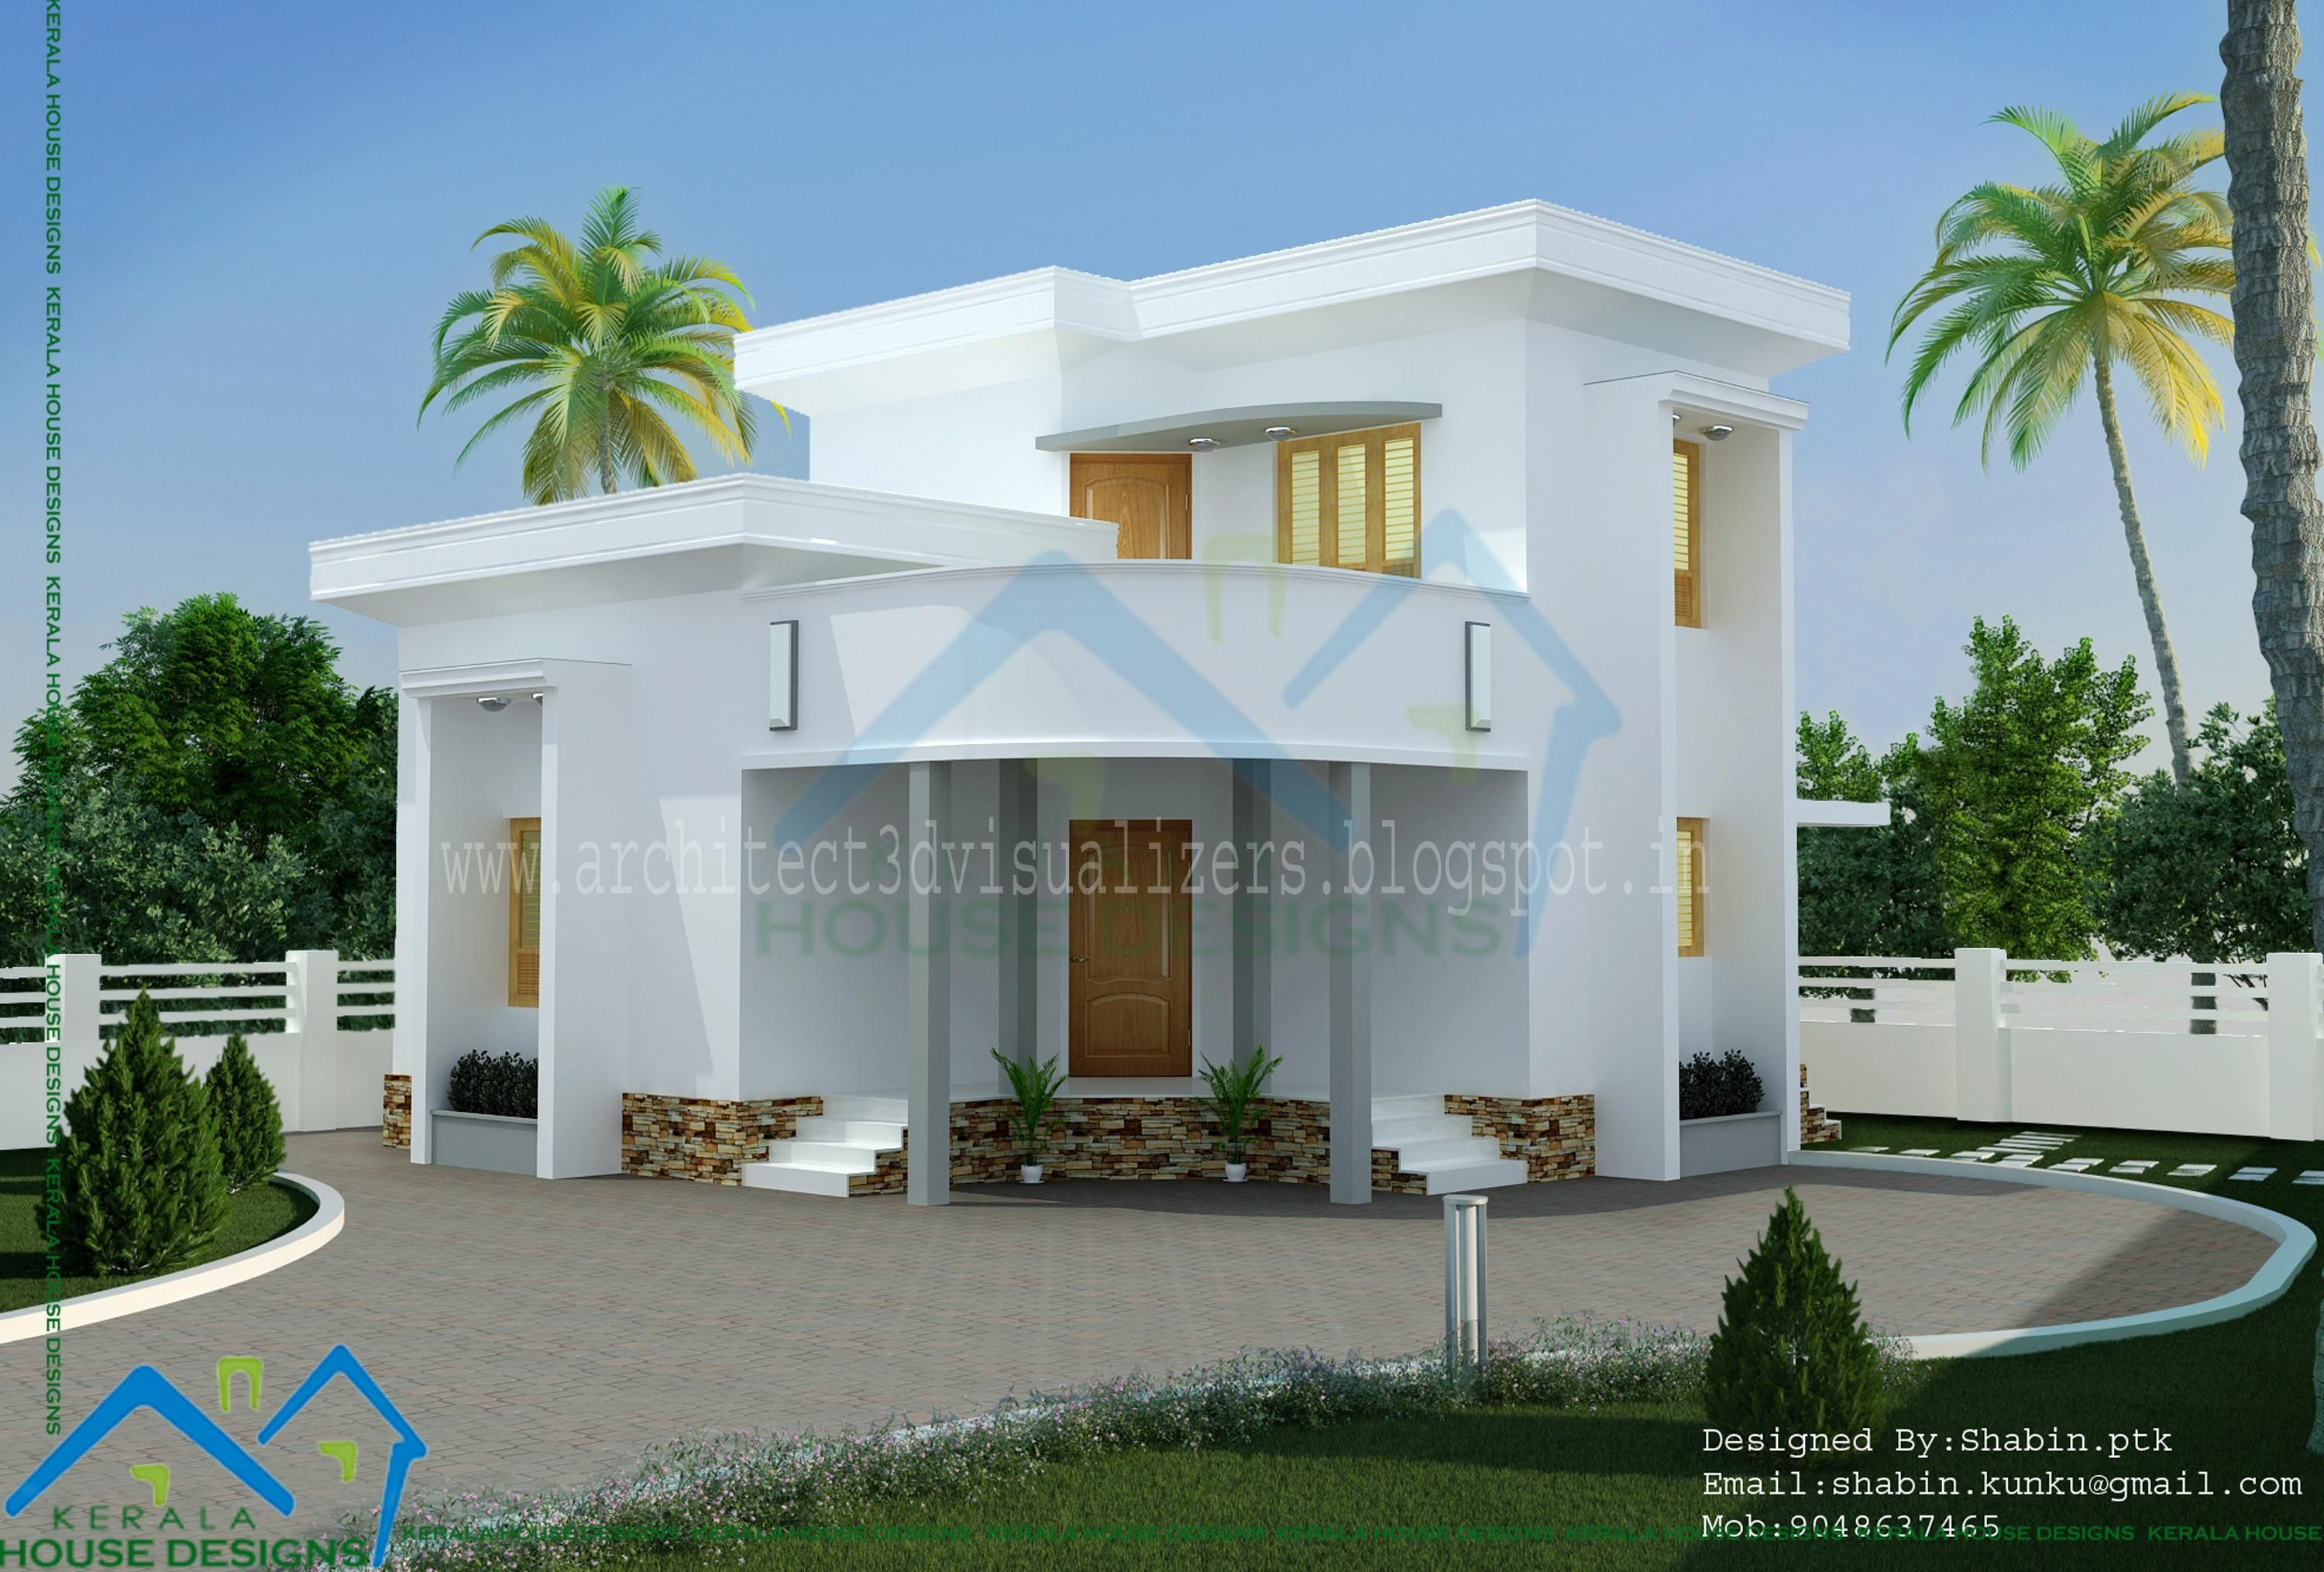 The Home Remodelling And Design Platform Houzz Recently Released Its Top 10 Home Design Trend Pre Small House Design Kerala Zen House Design House Design Games